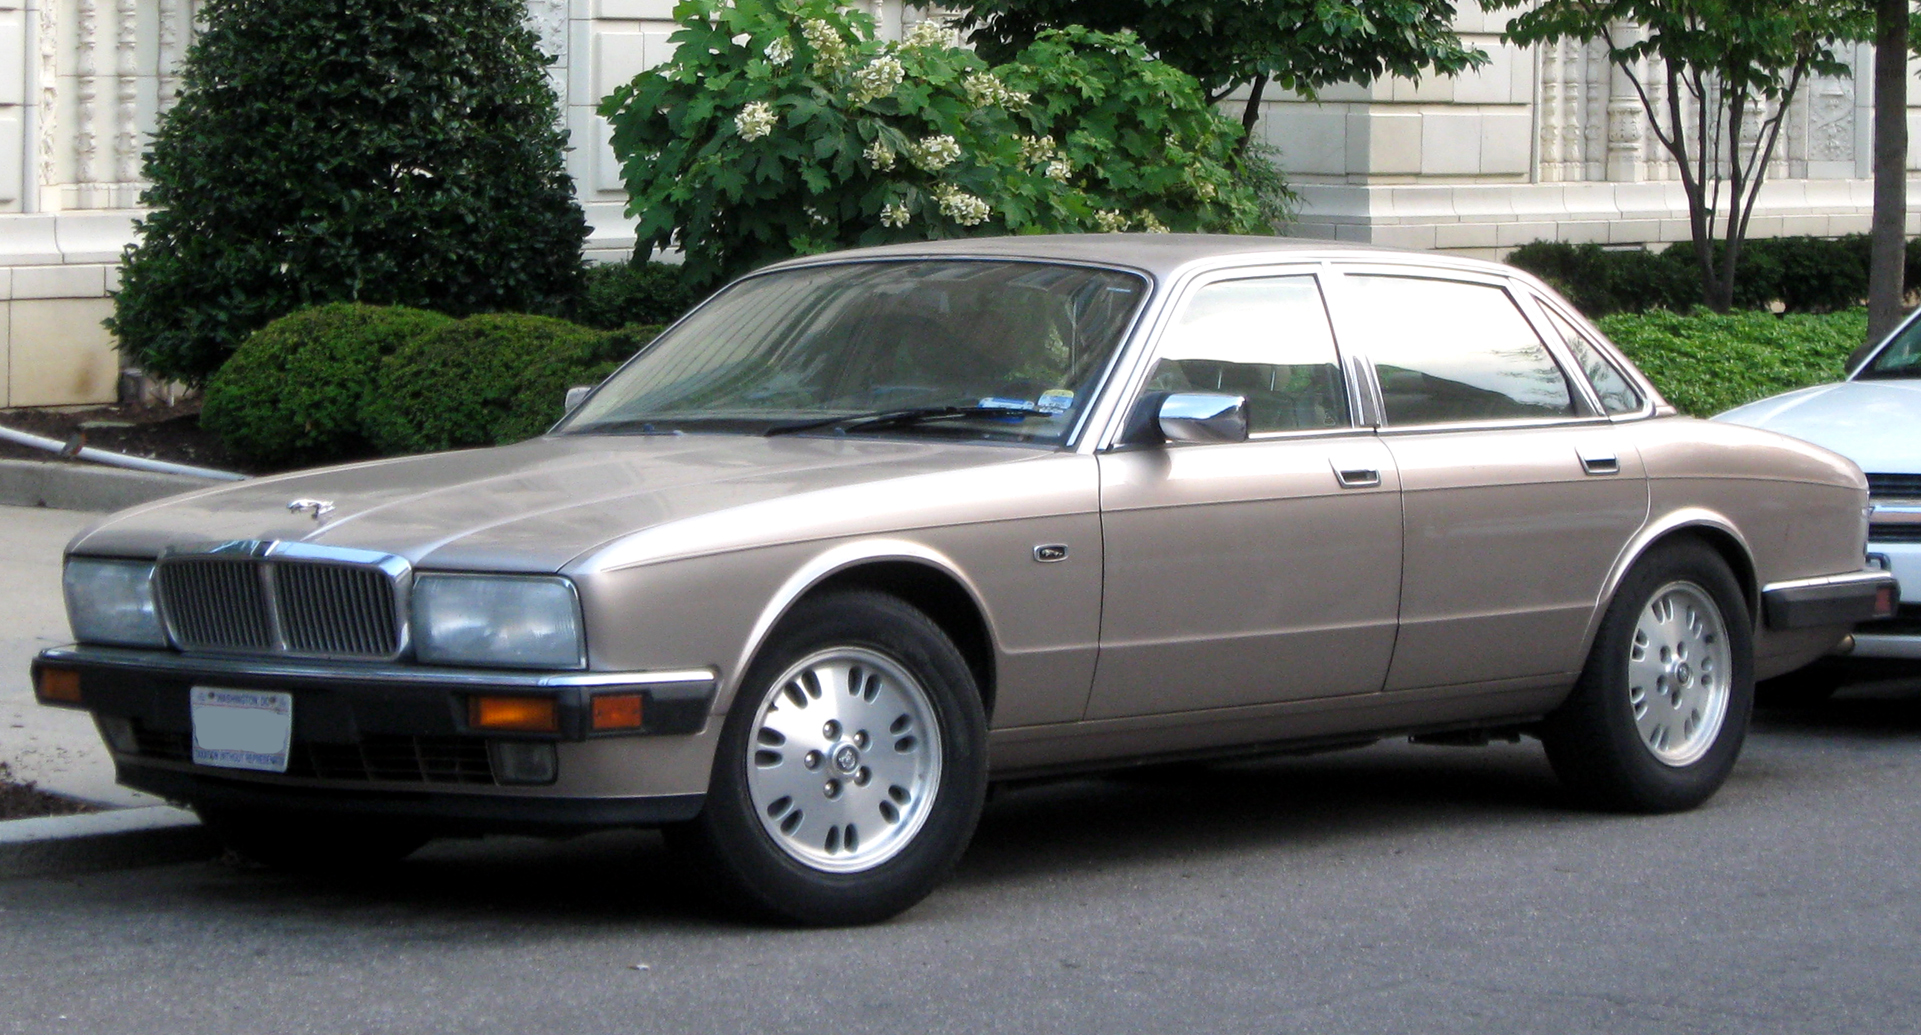 1991 Jaguar Xj-series #2